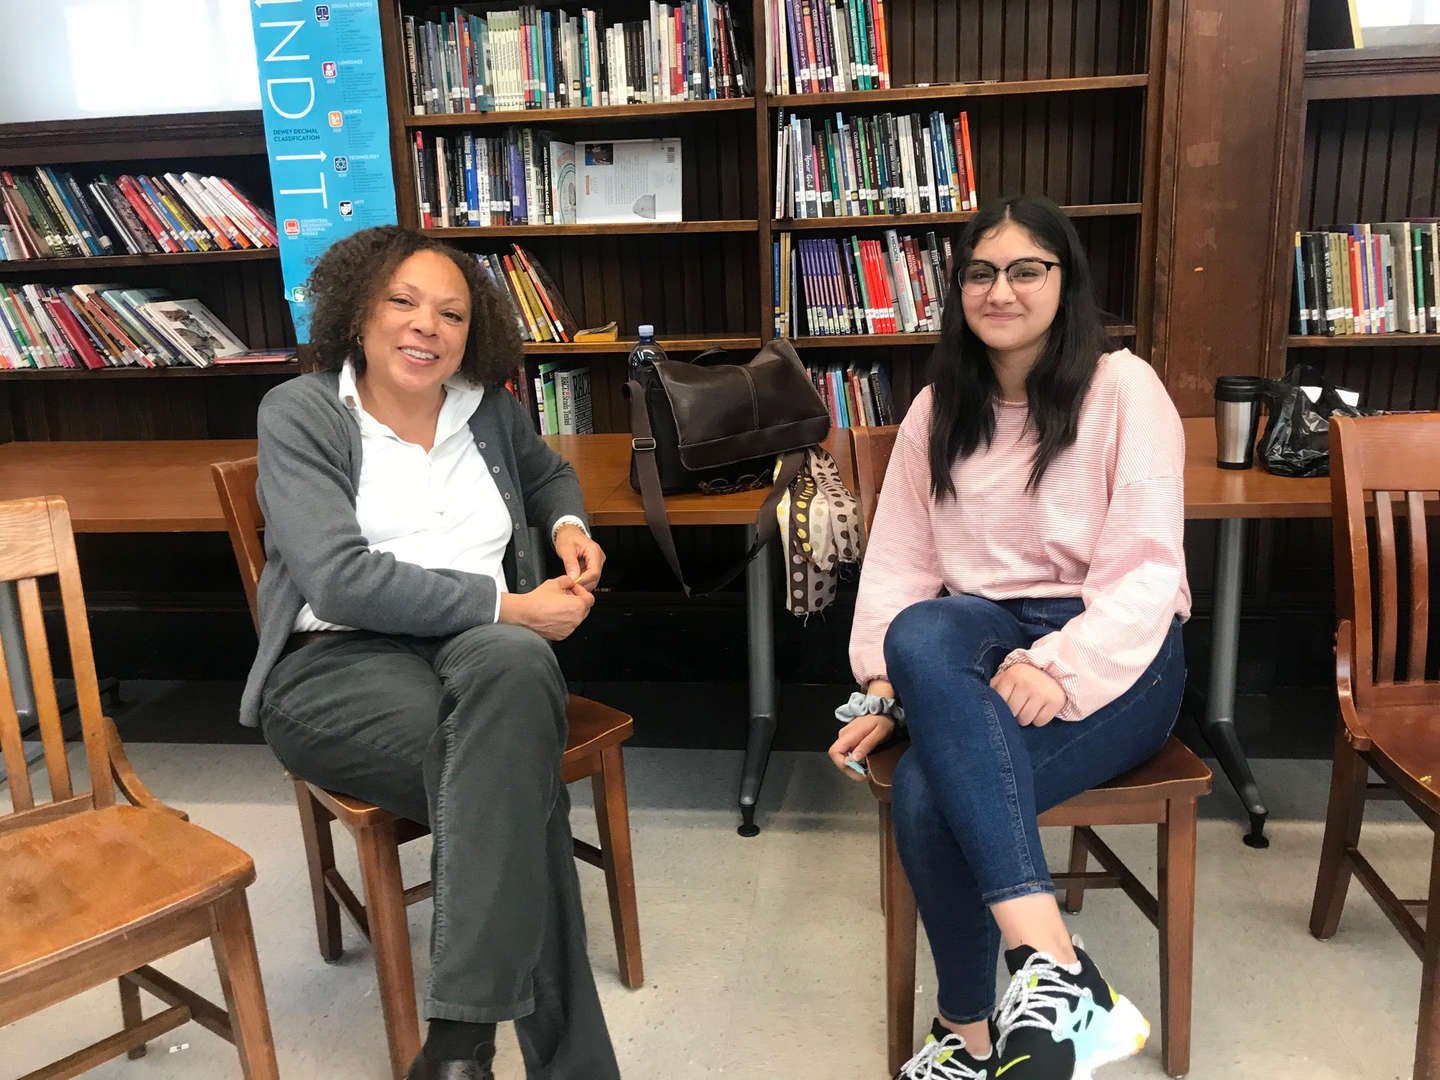 Student sitting with a member of the administration in the library